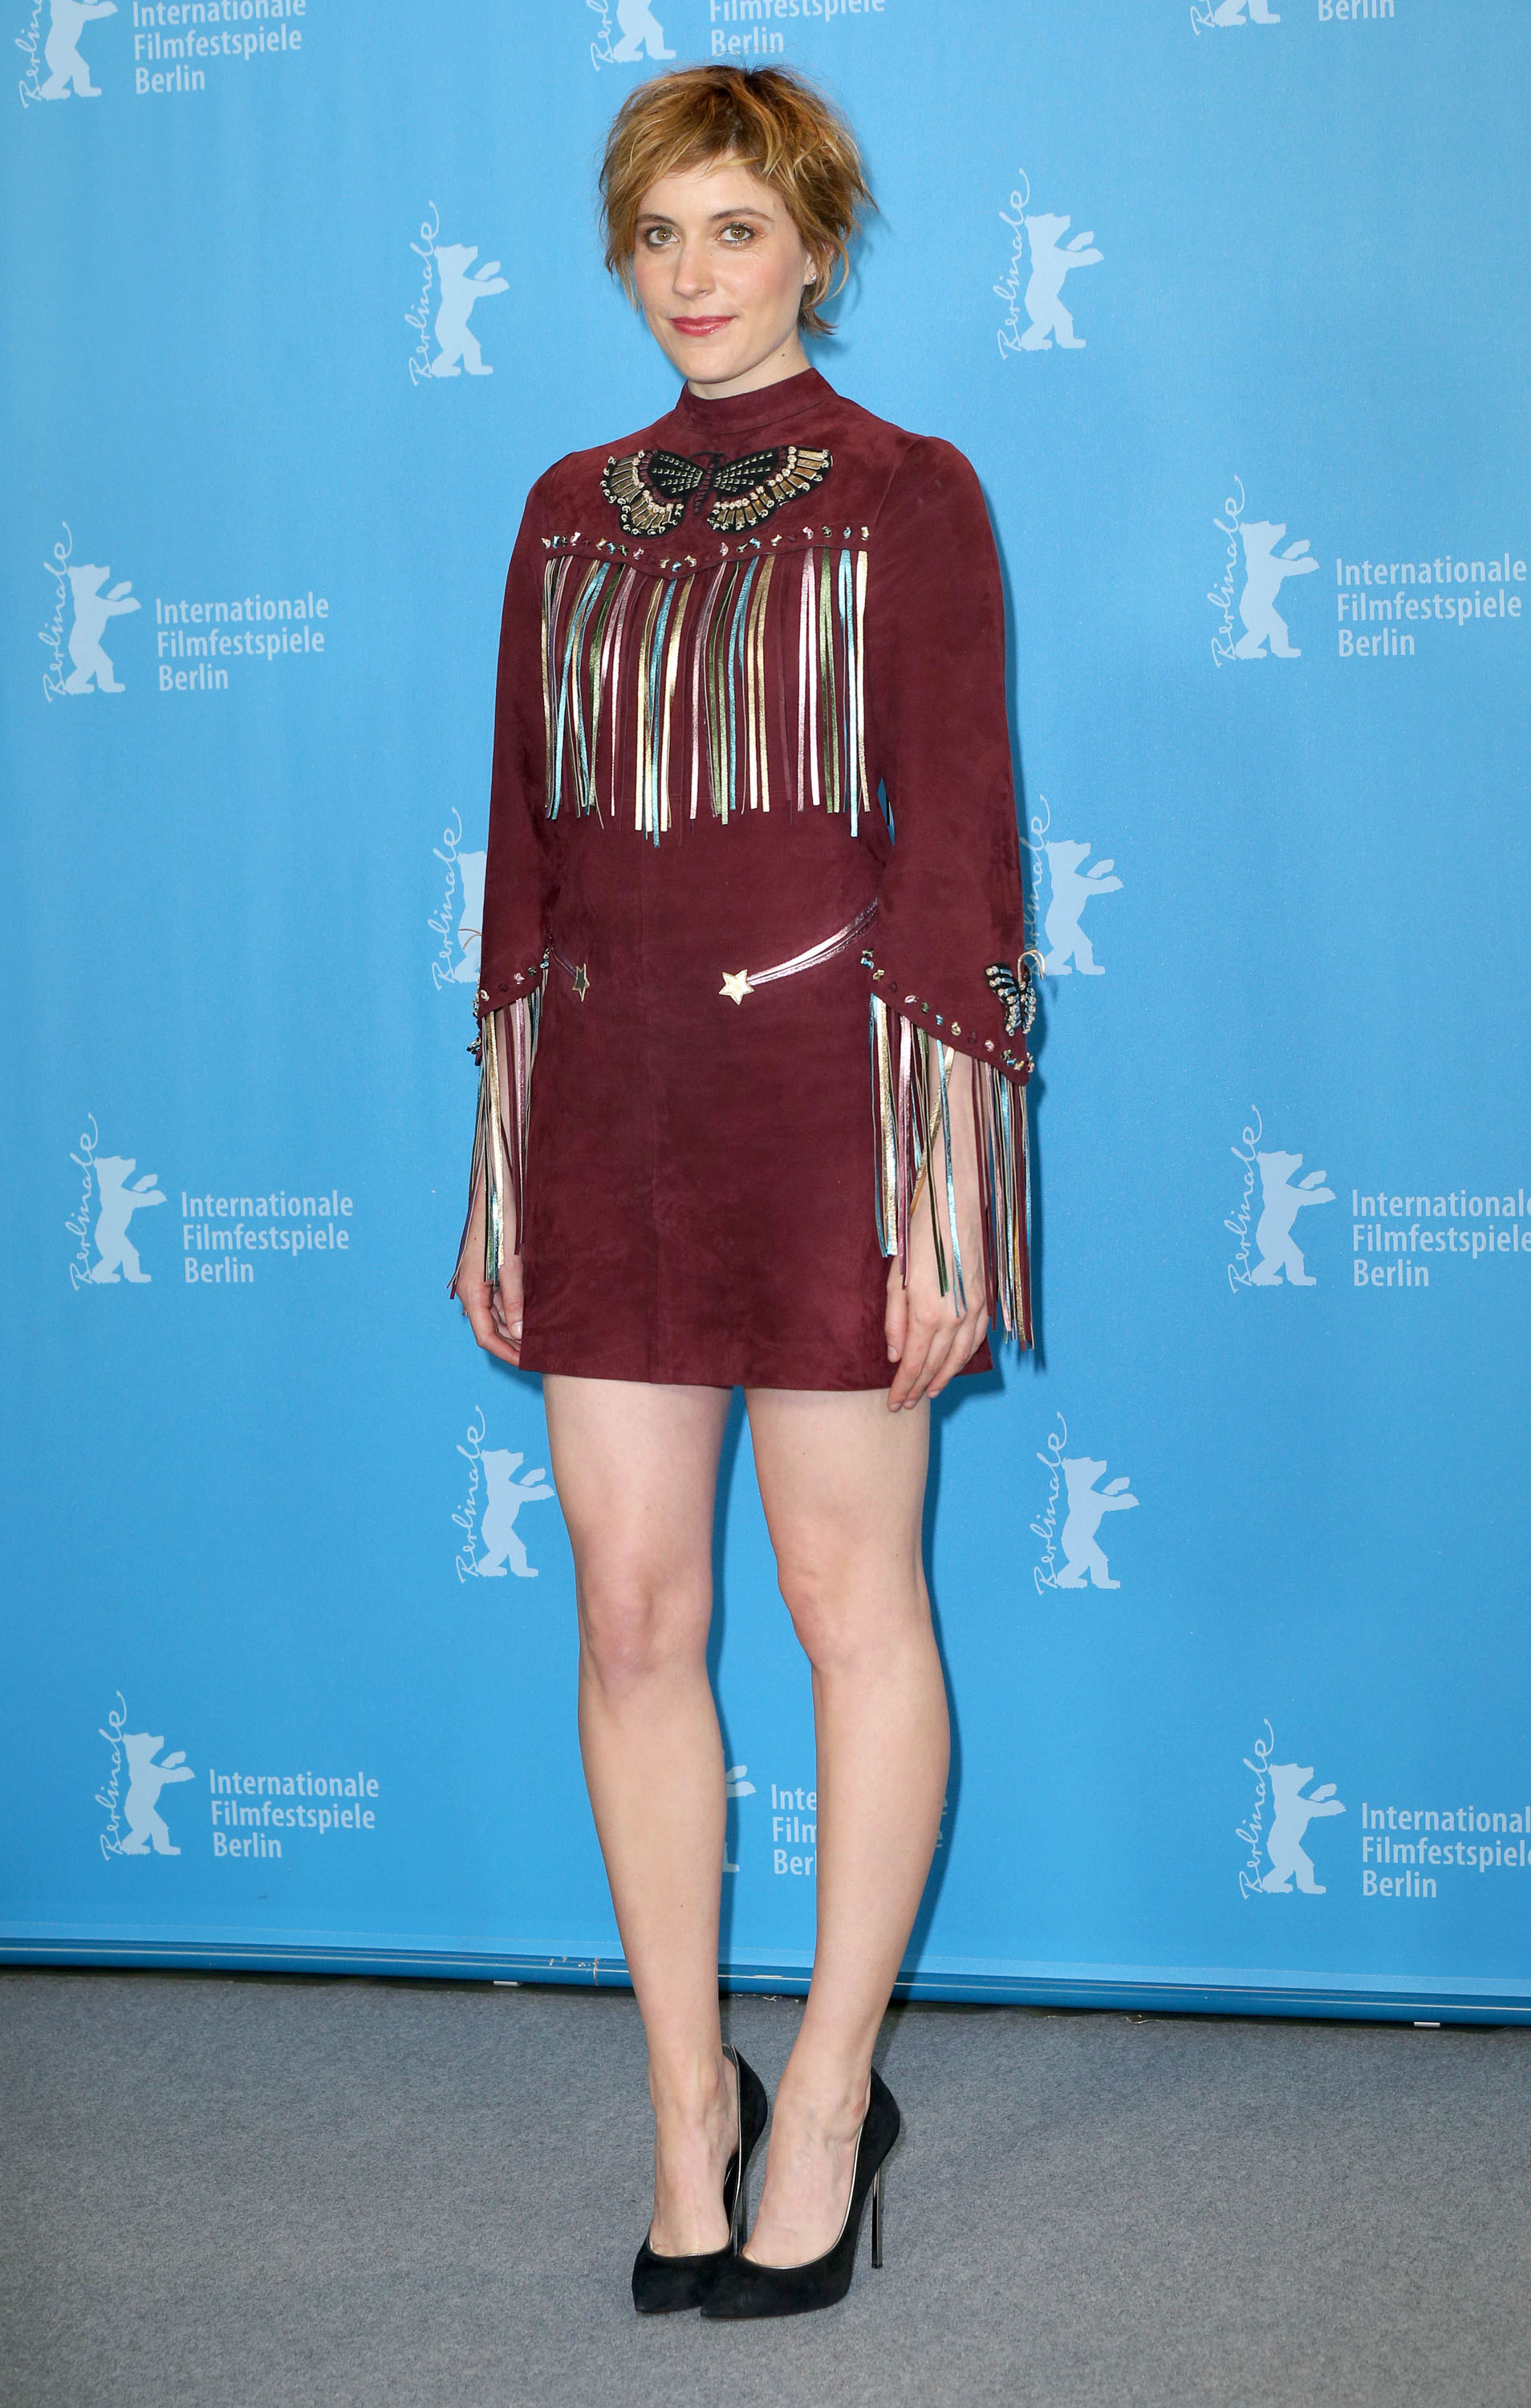 Recent Fugs: Greta Gerwig in Valentino and Chanel